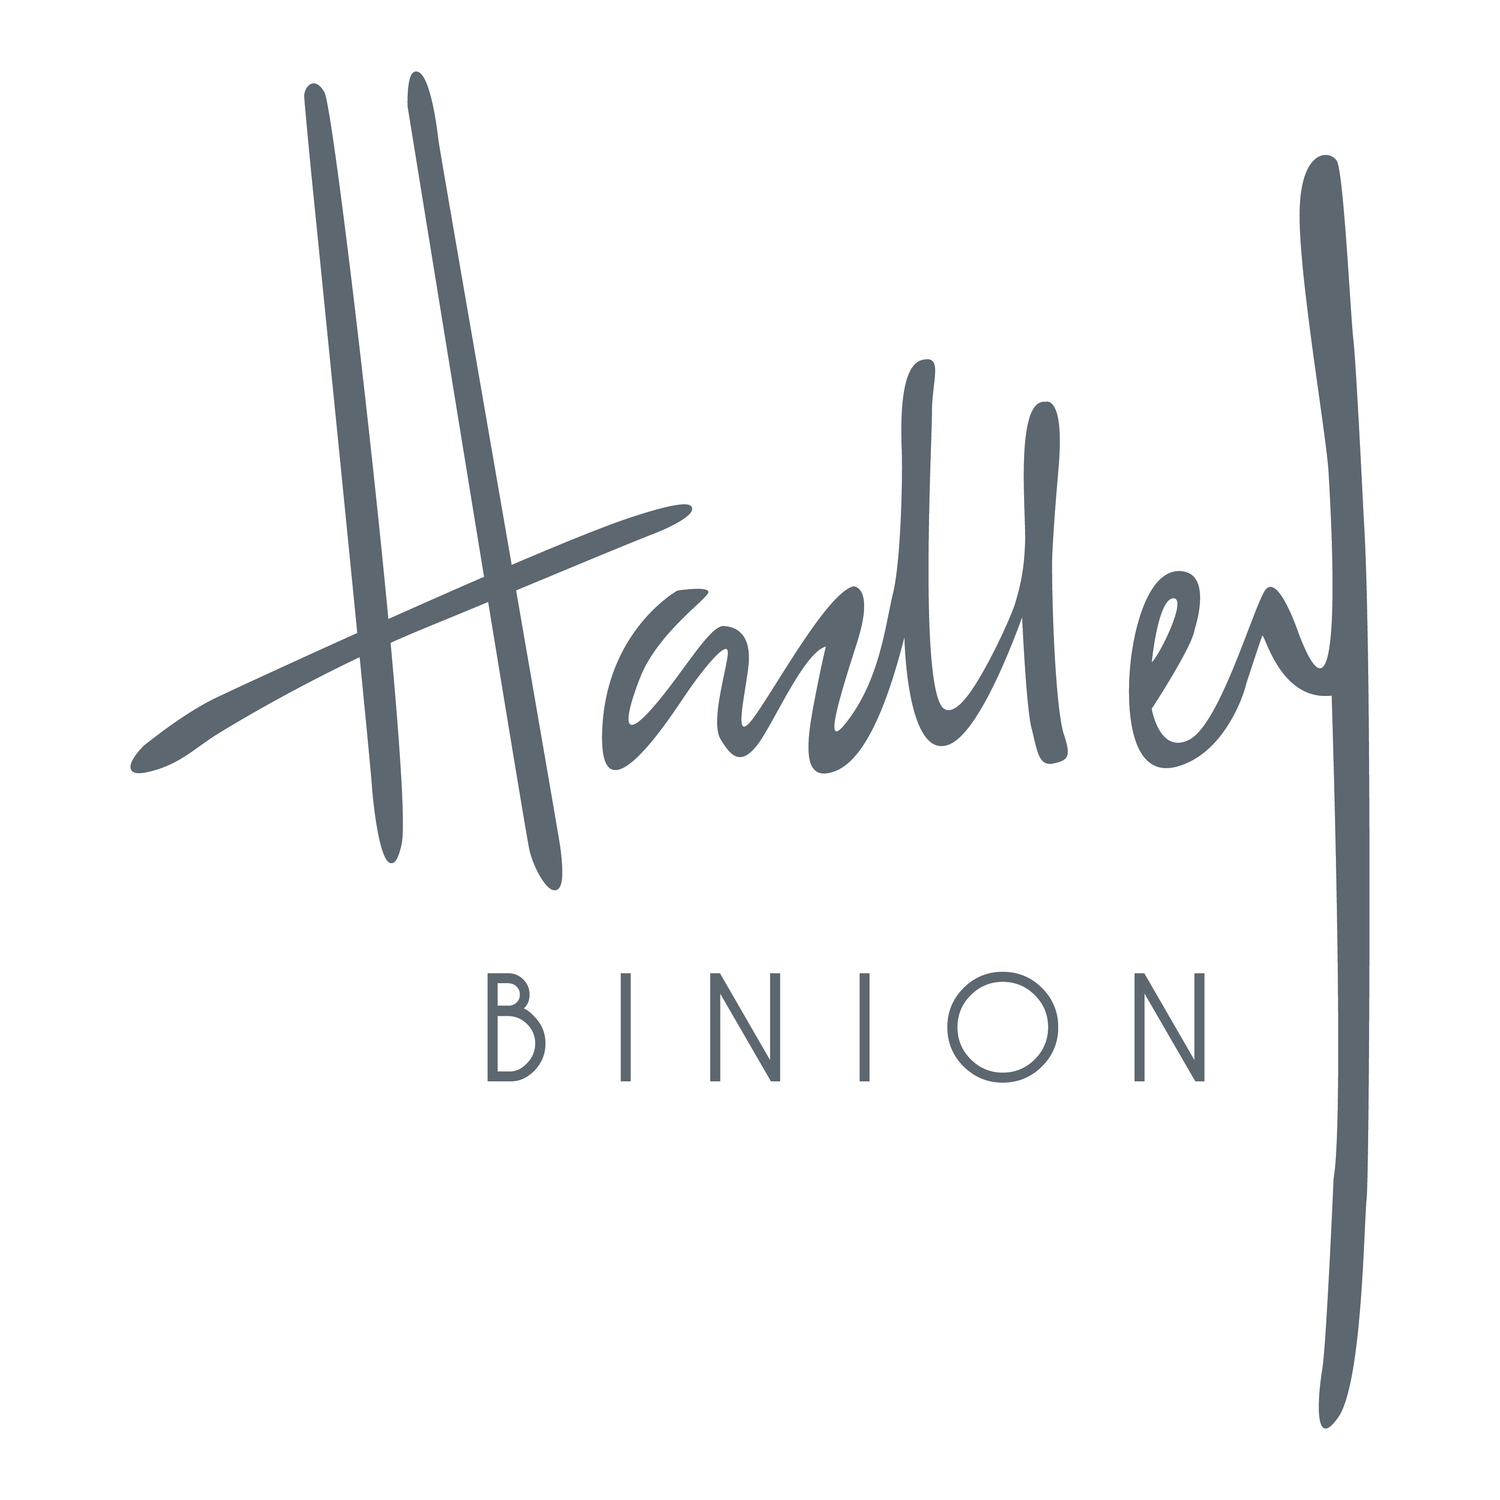 Hadley Binion Designs